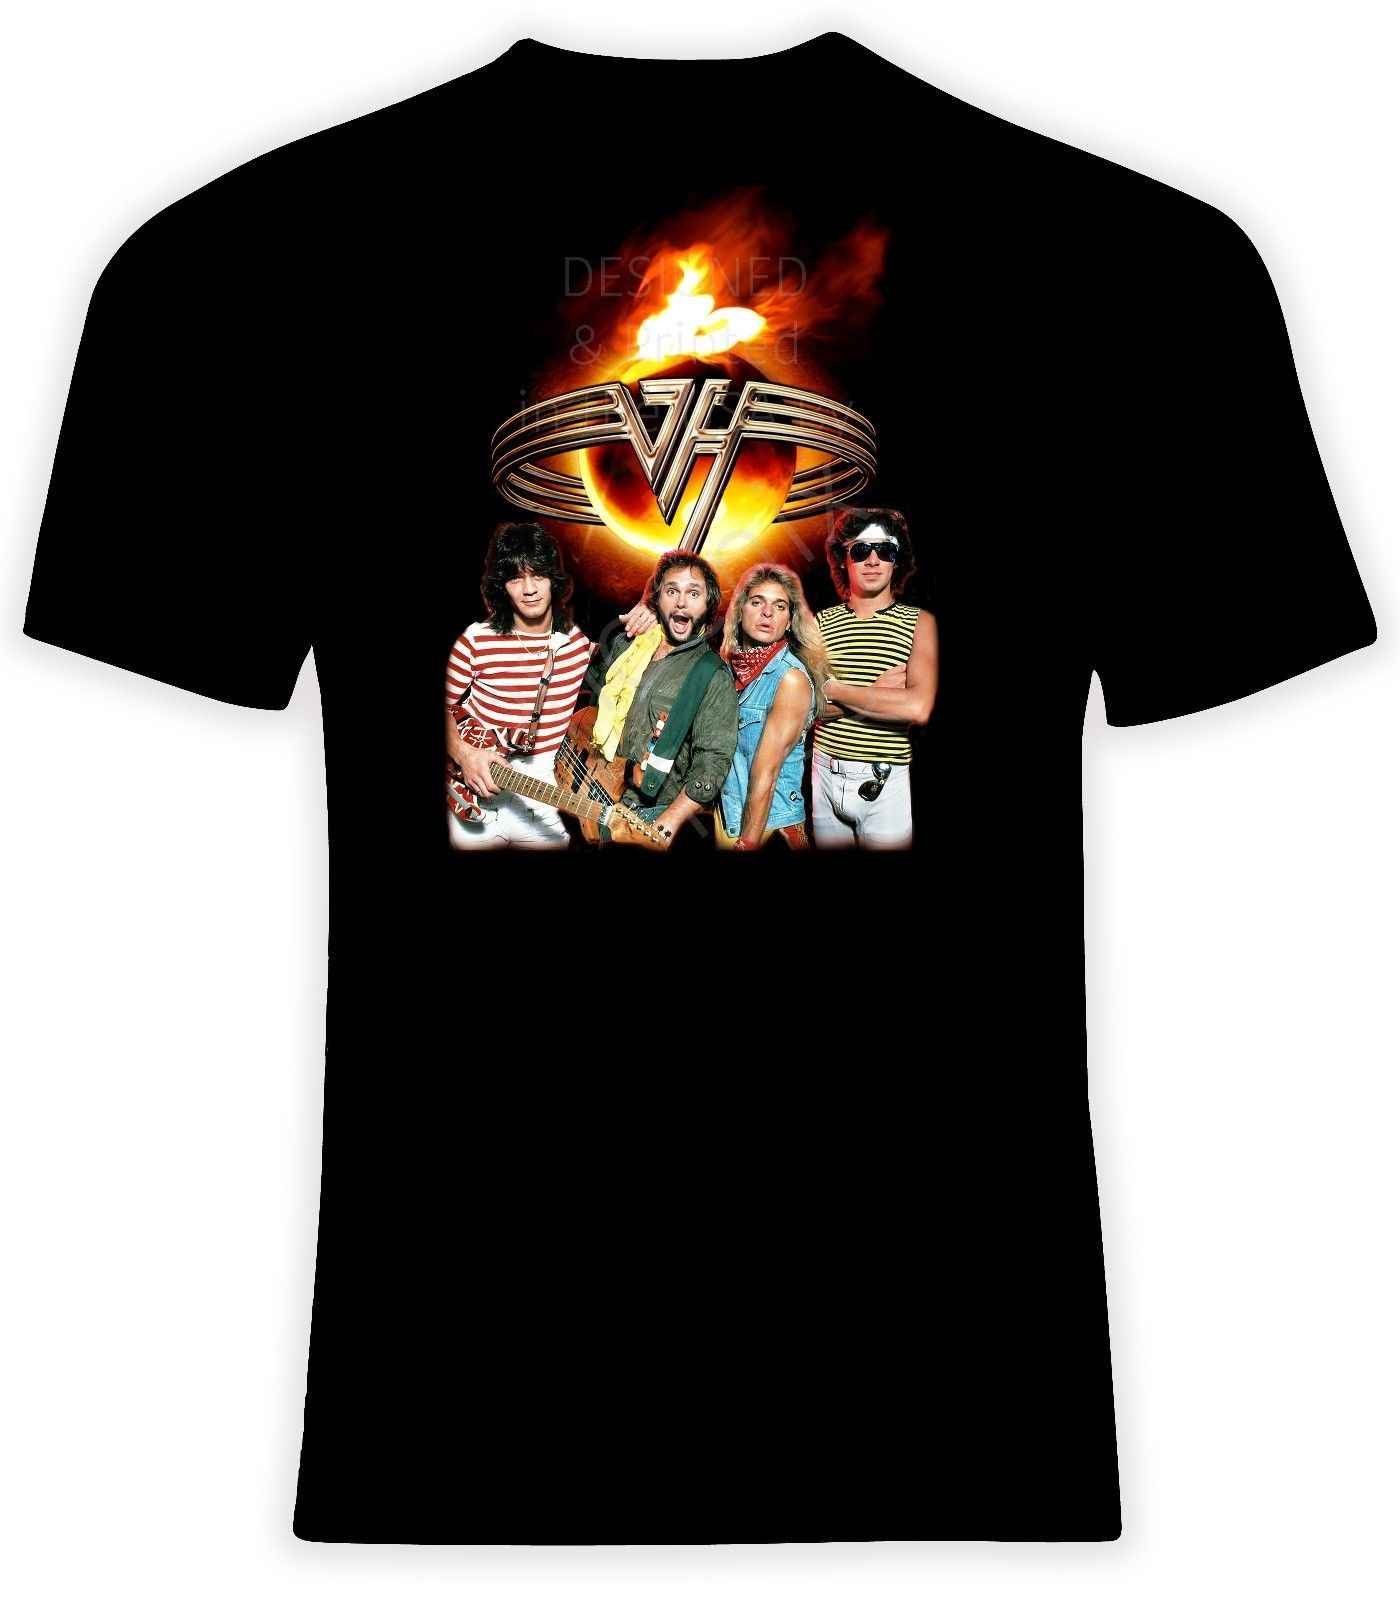 Van Halen With David Lee Roth T Shirt Sizes S 6X Short Or Long Sleeve